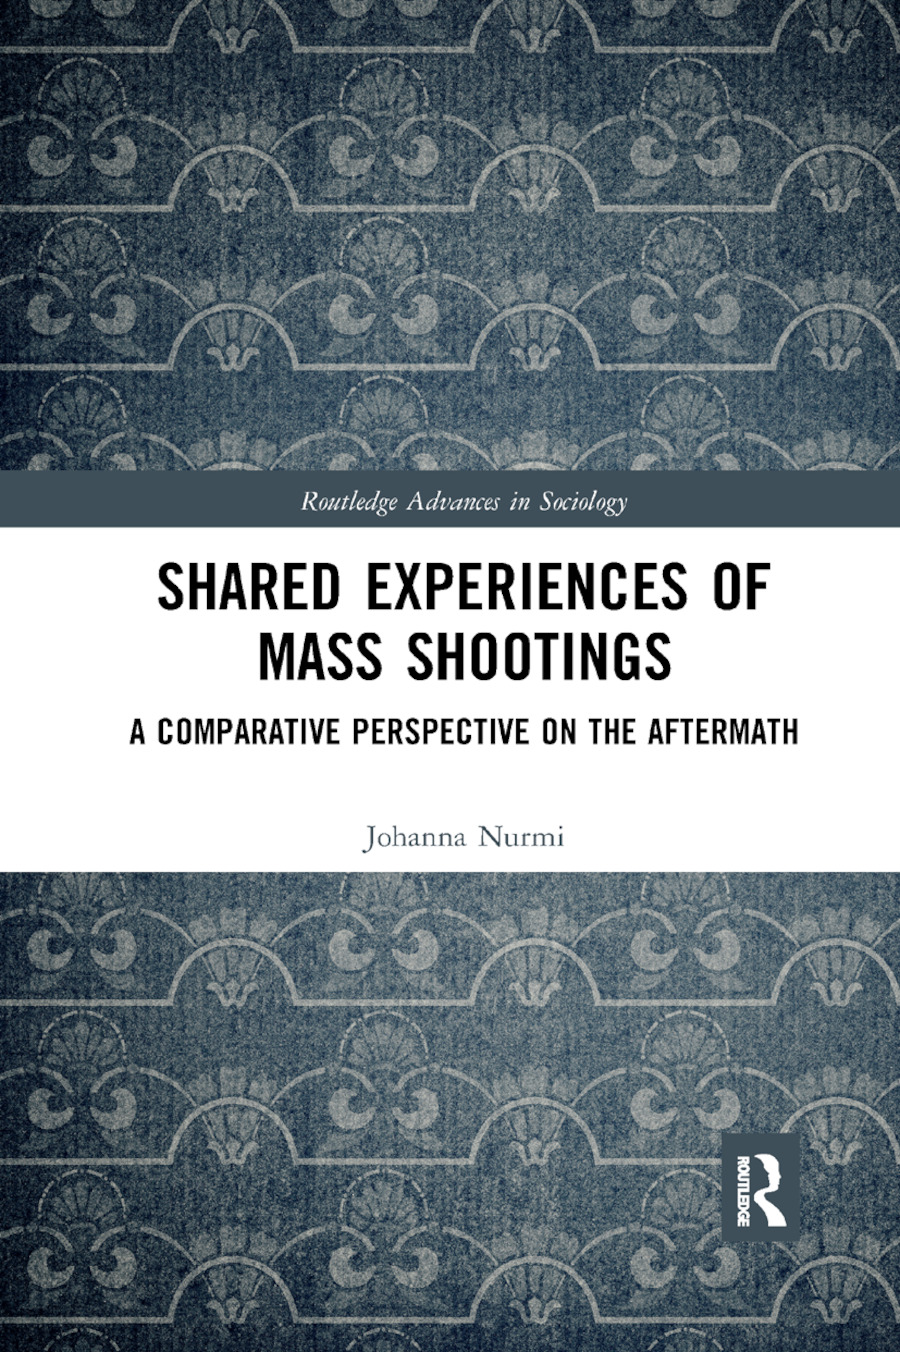 Shared Experiences of Mass Shootings: A Comparative Perspective on the Aftermath book cover